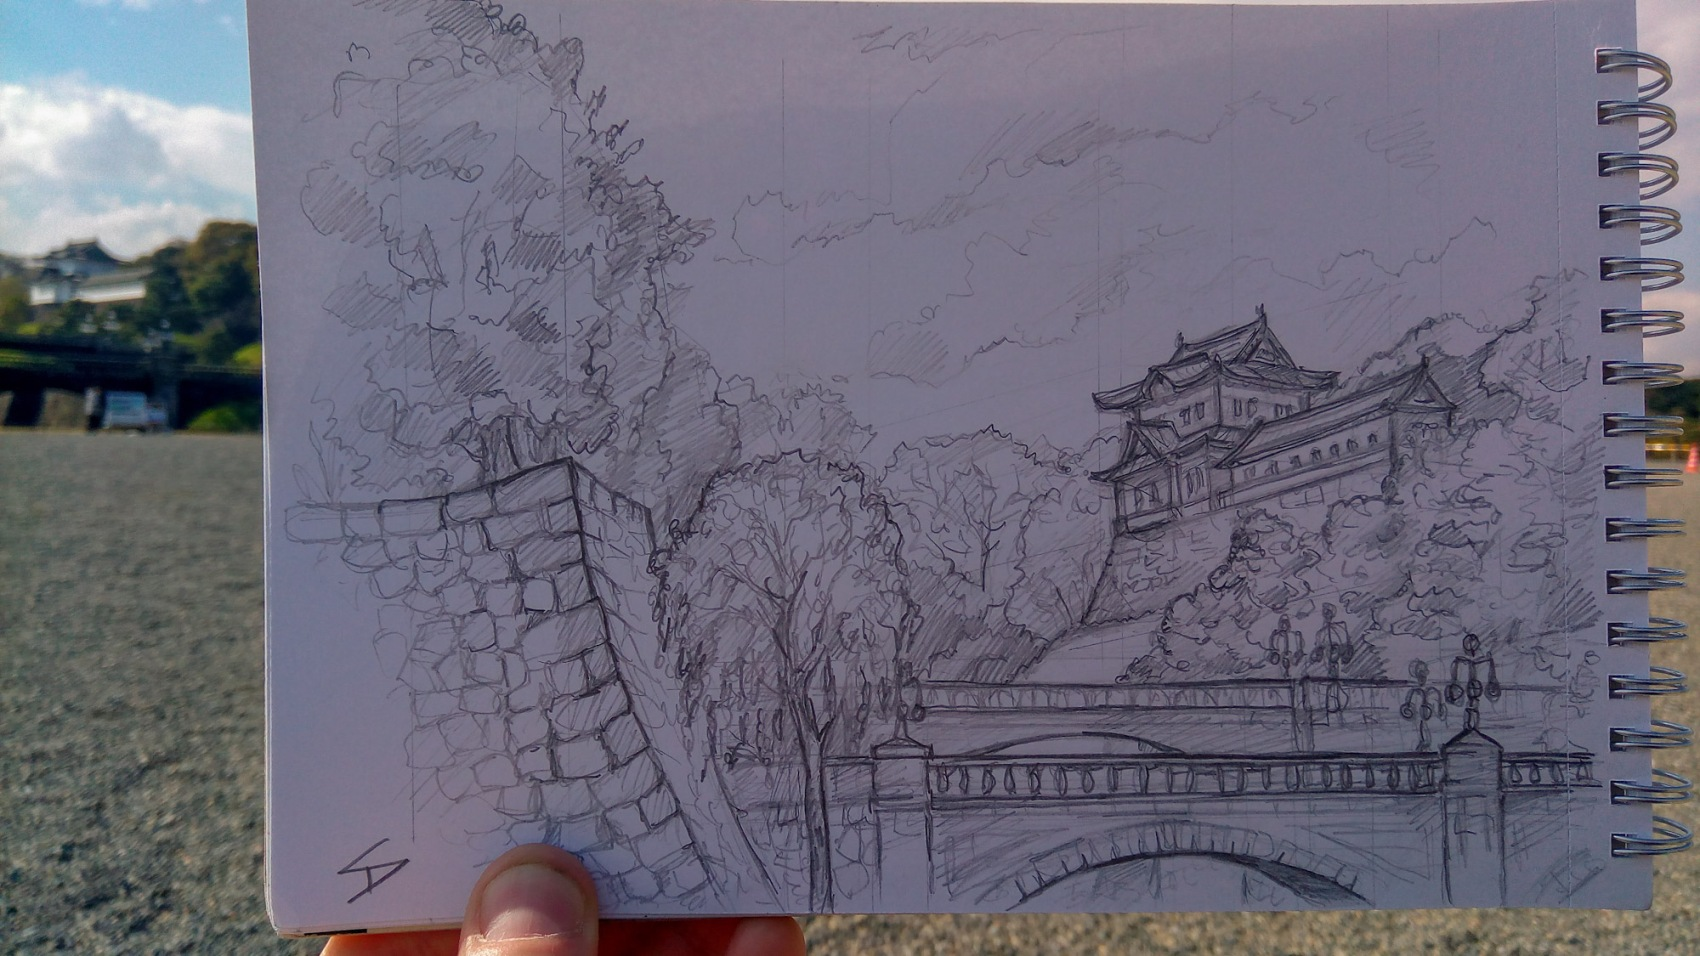 Urban photo art – Chiyoda City, Tokyo, Japan. 'Imperial Palace.' Artwork from my latest travel art blog article 'Sakura Japan.' Now online - sketchbookexplorer.com @davidasutton @sketchbookexplorer Facebook.com/davidanthonysutton #sketch #drawing #art #japan #tokyo #sakura #tokyoimperialpalace #samurai #travel #travelblog #cherryblossom #cherryblossomseason #cherryblossomjapan